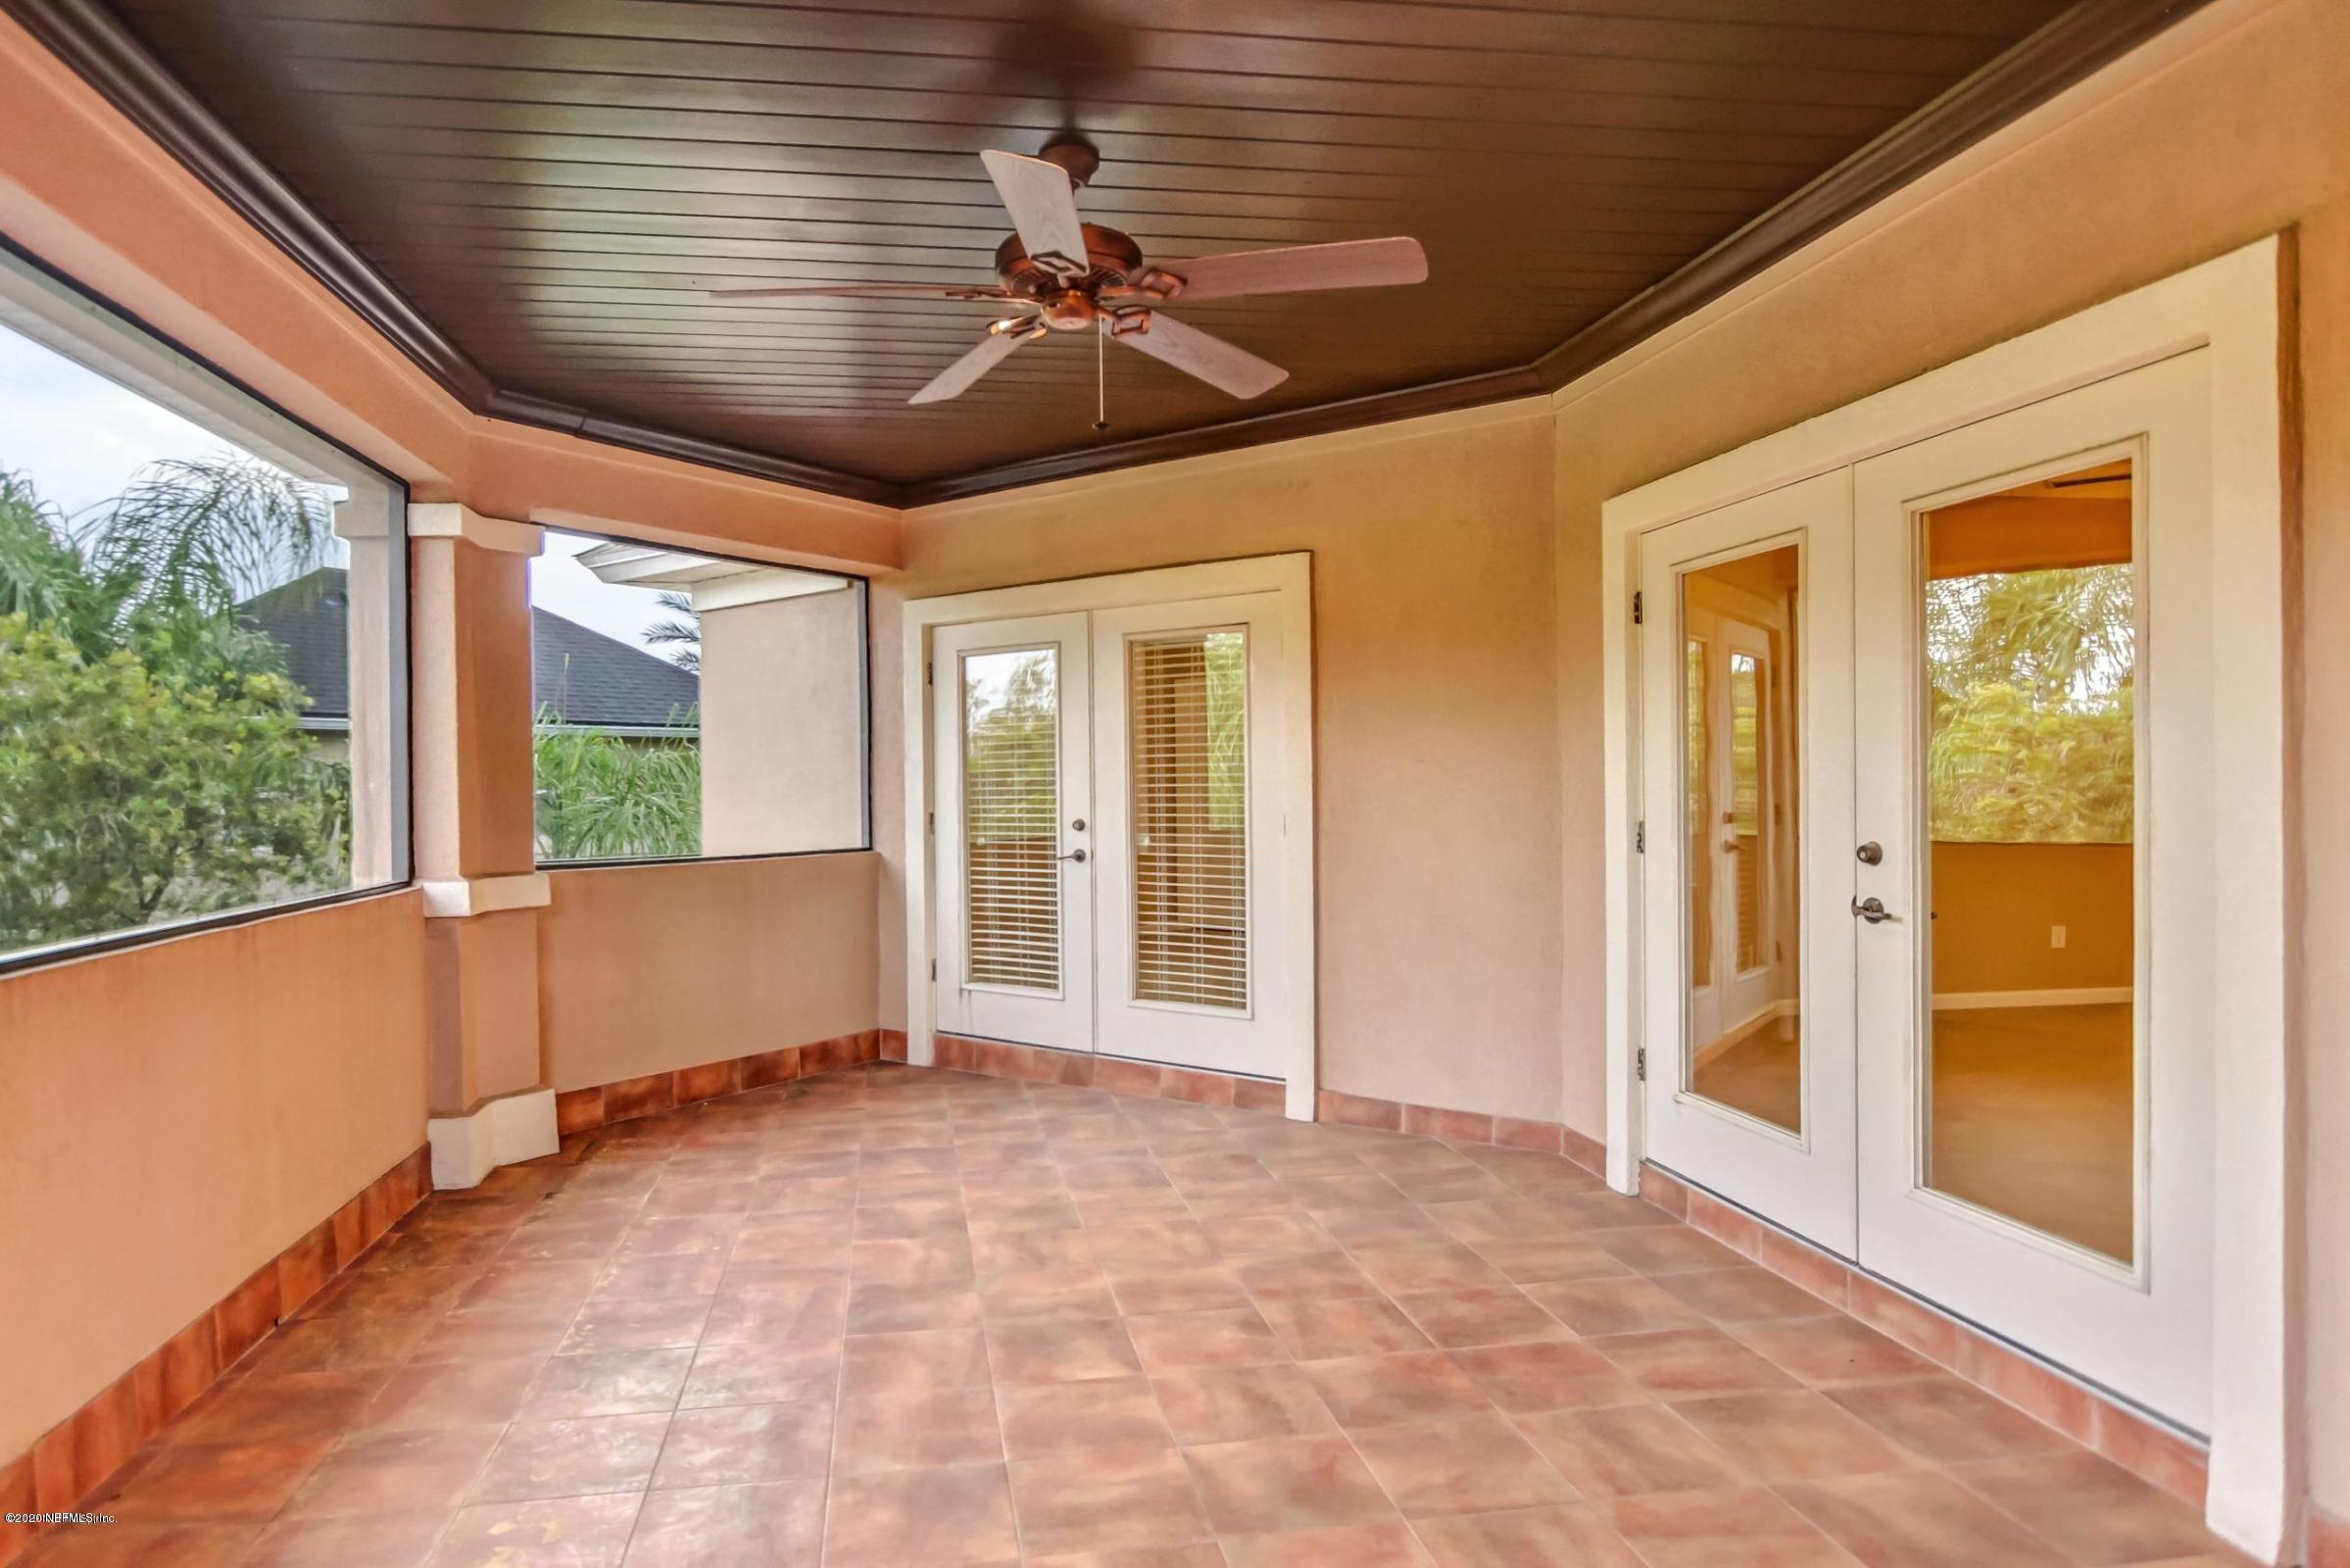 200 CLEARLAKE, PONTE VEDRA BEACH, FLORIDA 32082, 5 Bedrooms Bedrooms, ,4 BathroomsBathrooms,Residential,For sale,CLEARLAKE,1056344